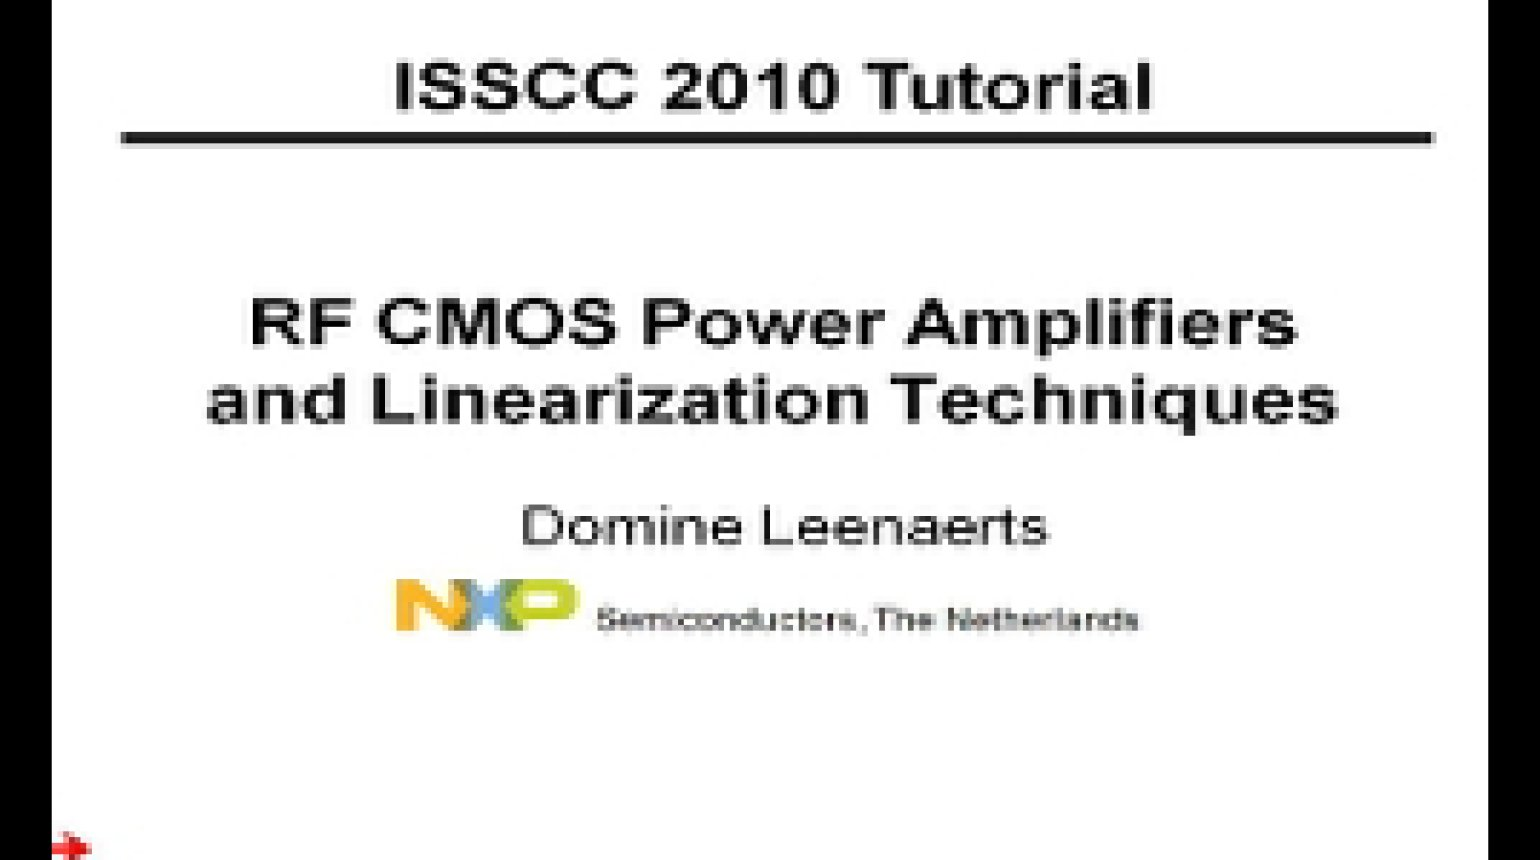 RF CMOS Power Amplifiers and Linearization Techniques Video